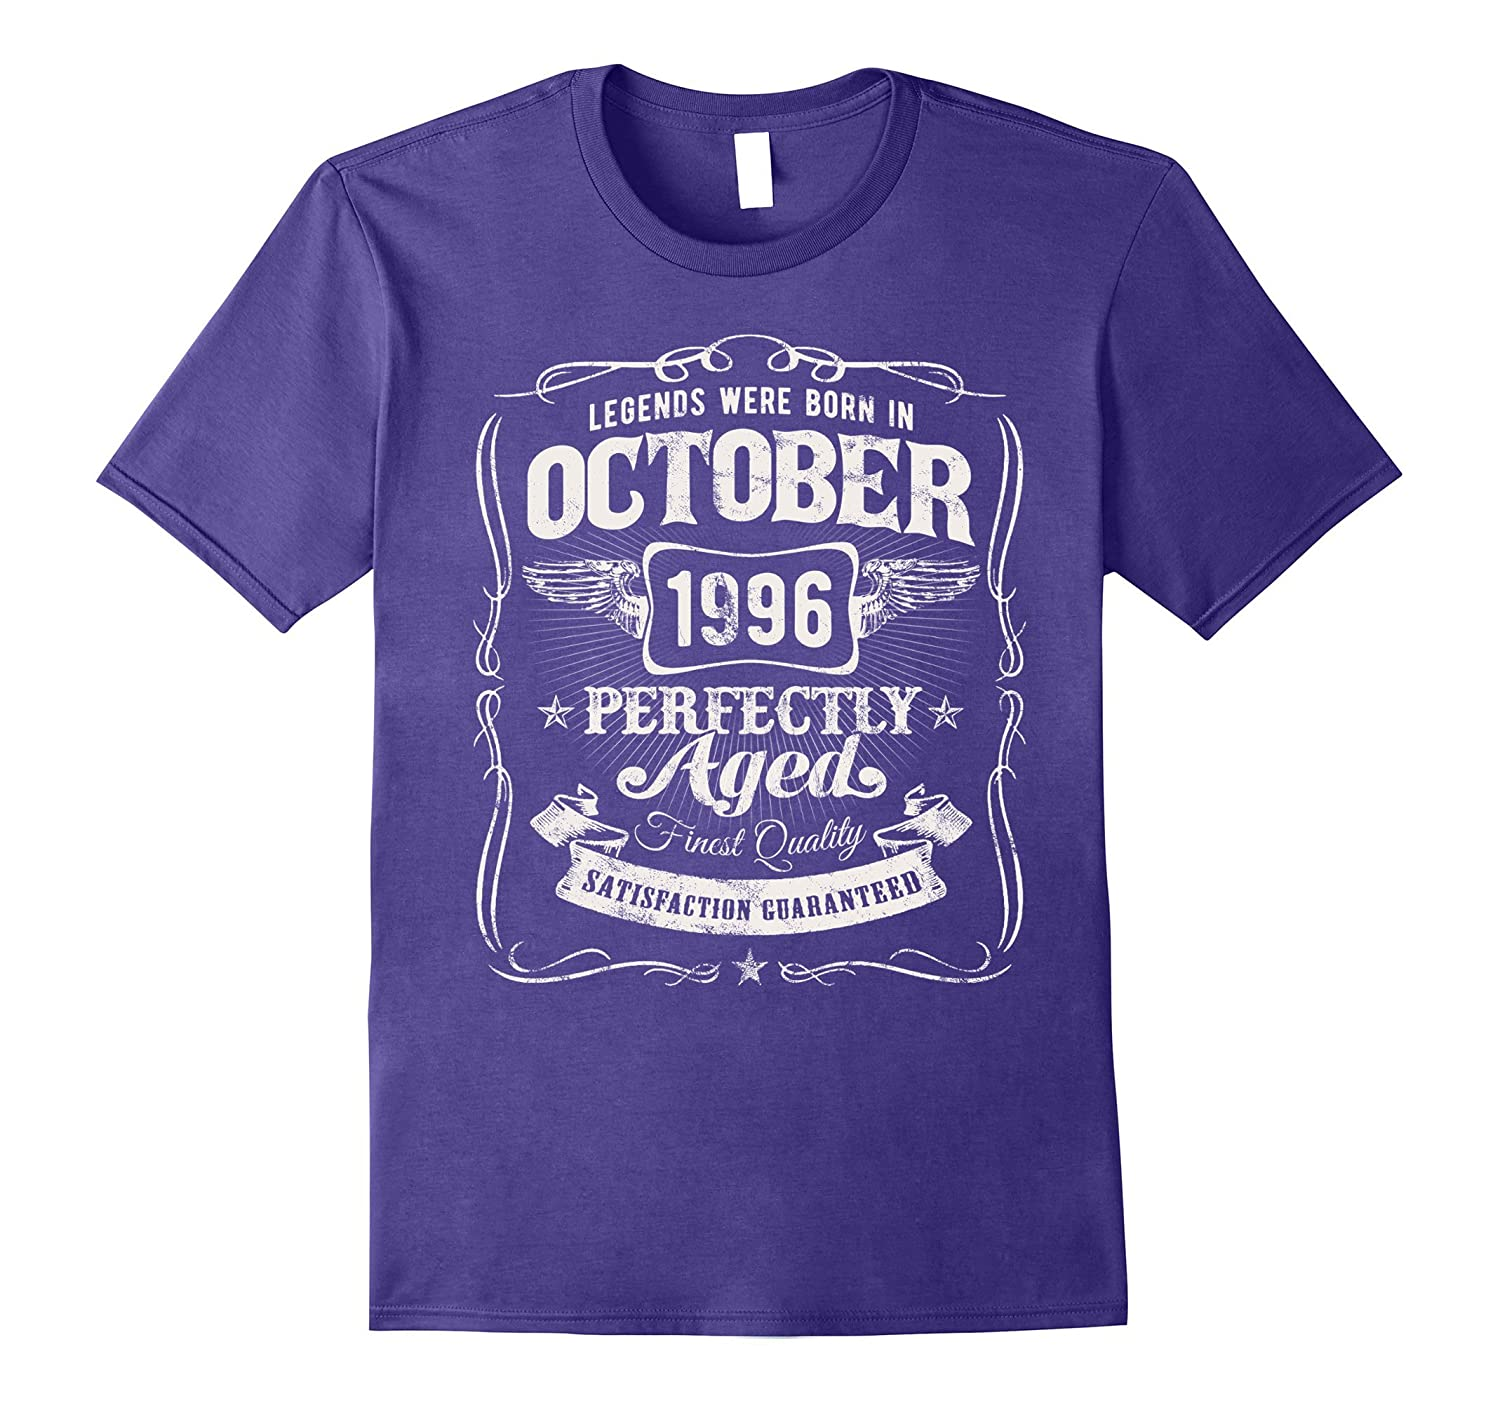 Legends Were Born In October 1996 Shirt 21st Birthday Gift-T-Shirt